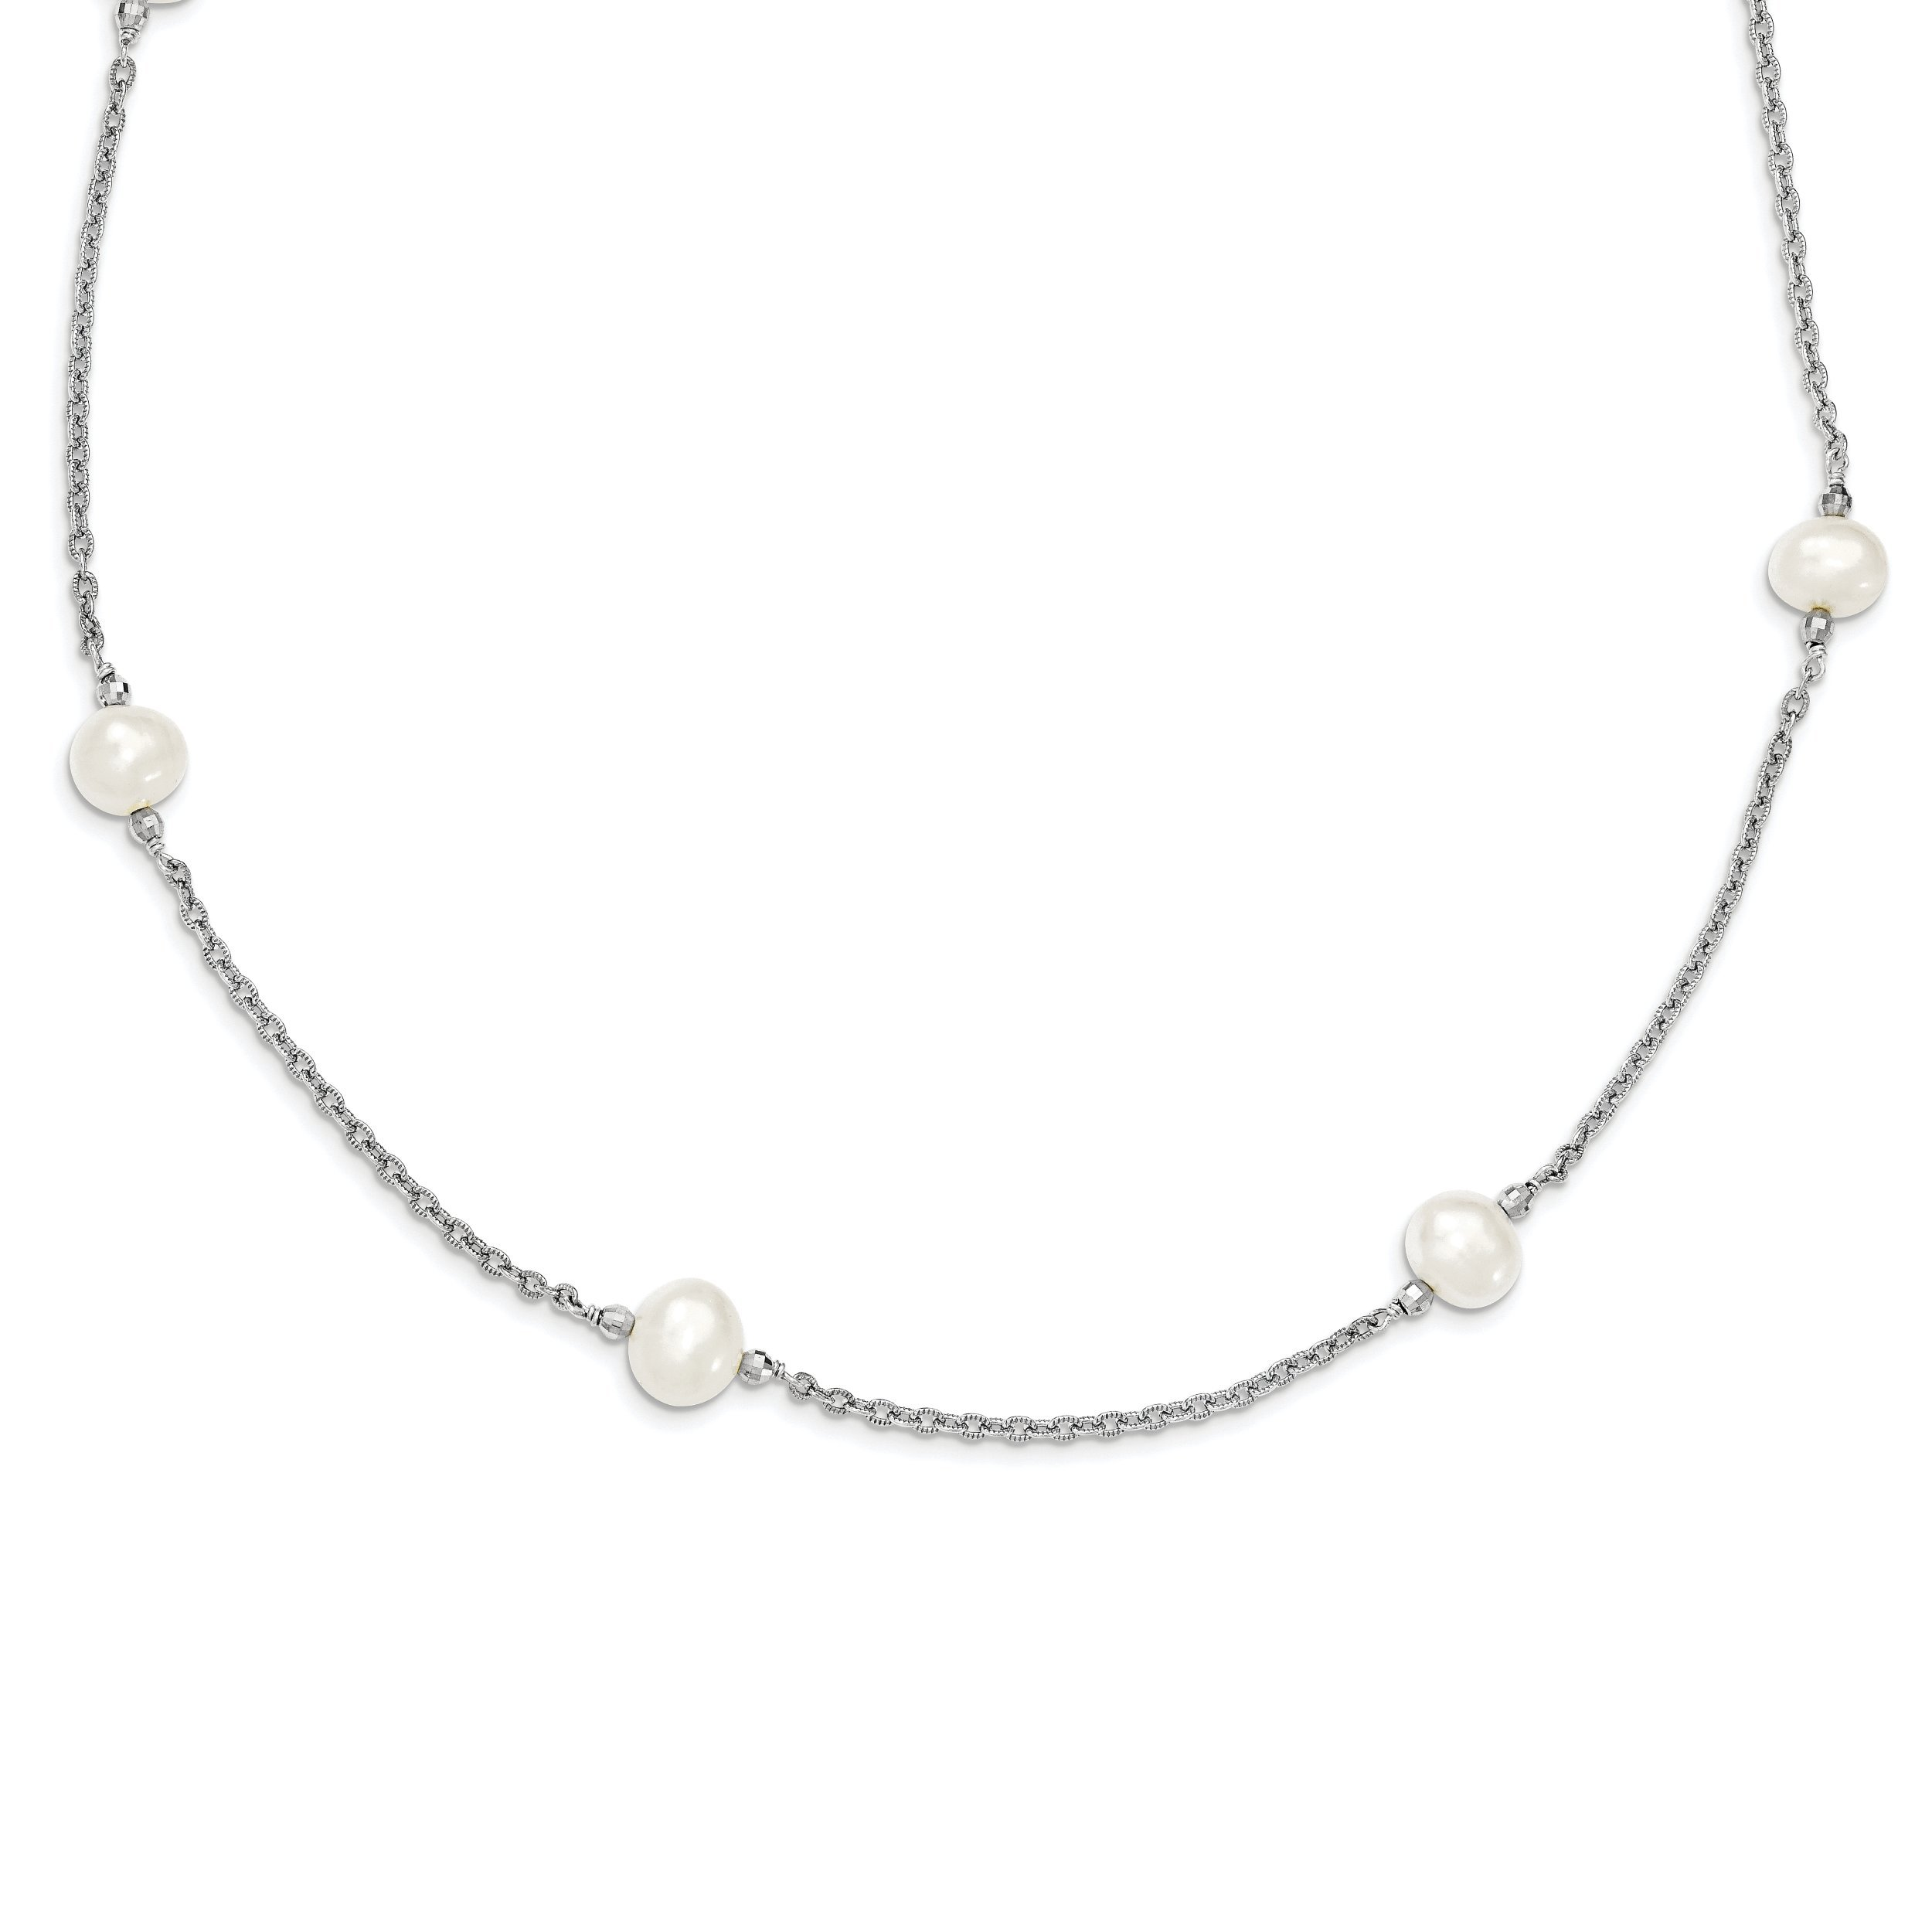 ICE CARATS 925 Sterling Silver Freshwater Cultured Pearl Mirror Beads Chain Necklace Fine Jewelry Gift Set For Women Heart